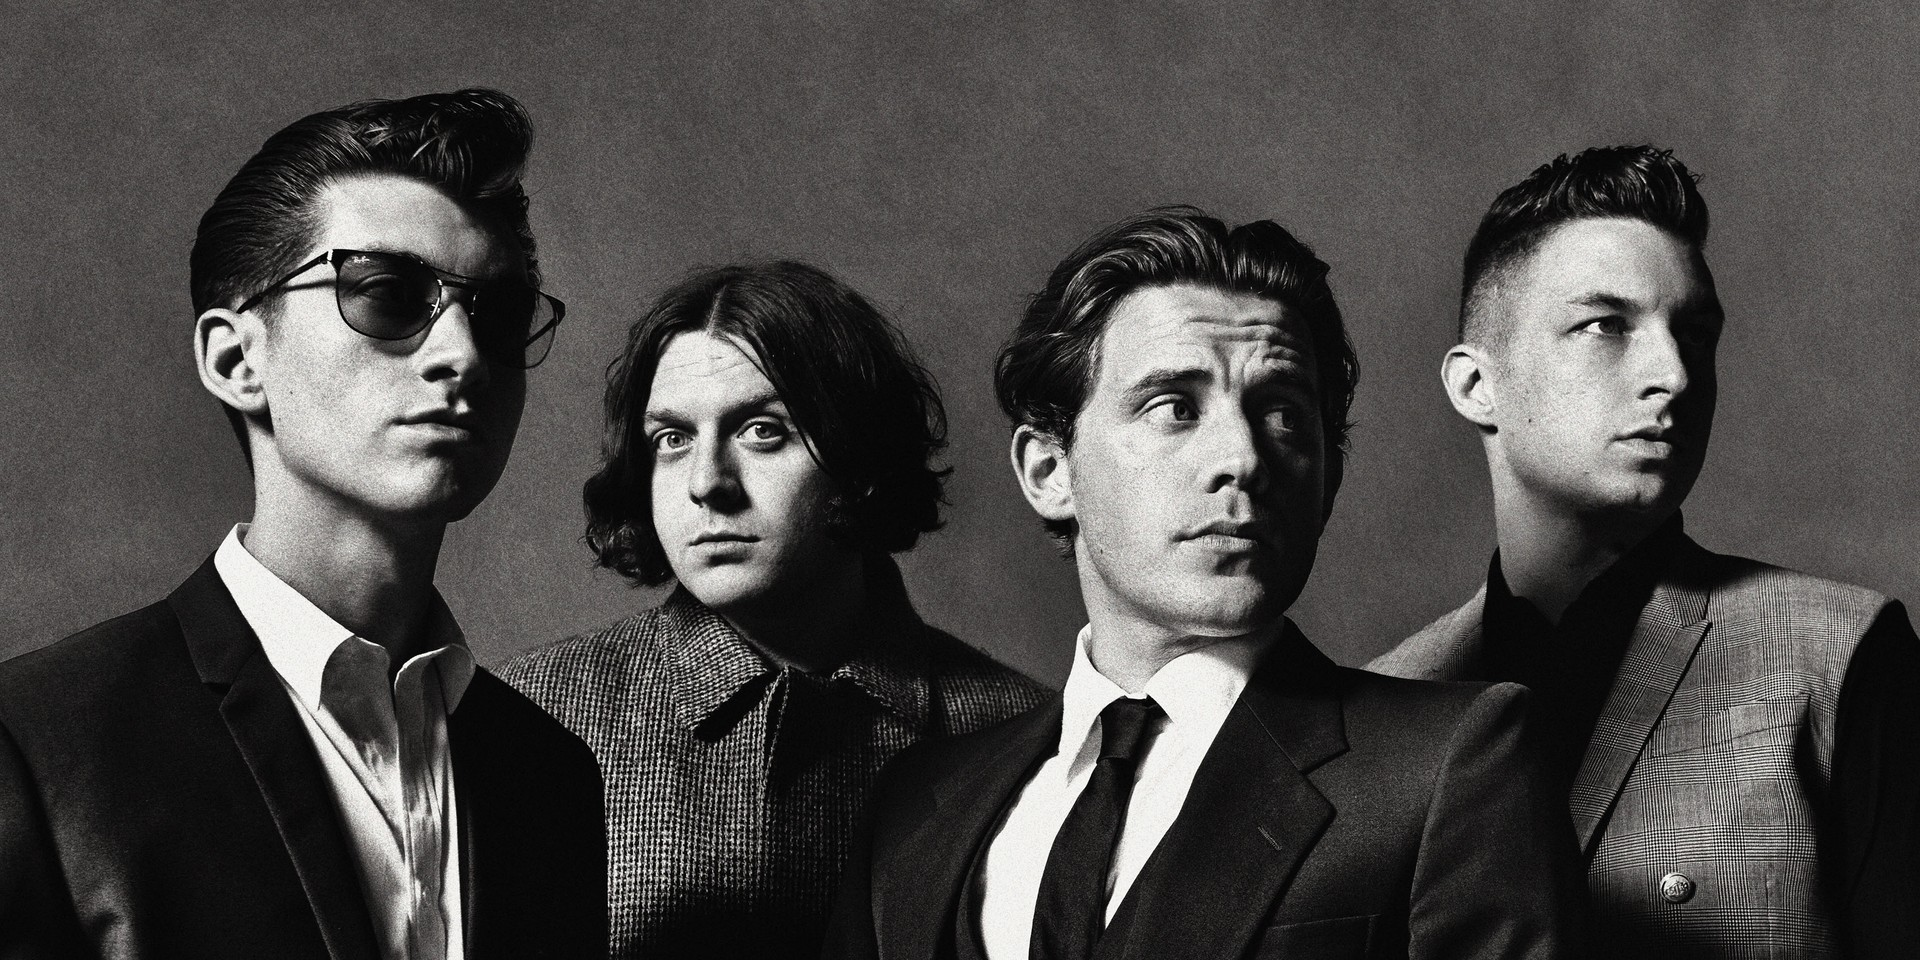 Now circulating: a new petition to get Arctic Monkeys frontman Alex Turner to shave his beard